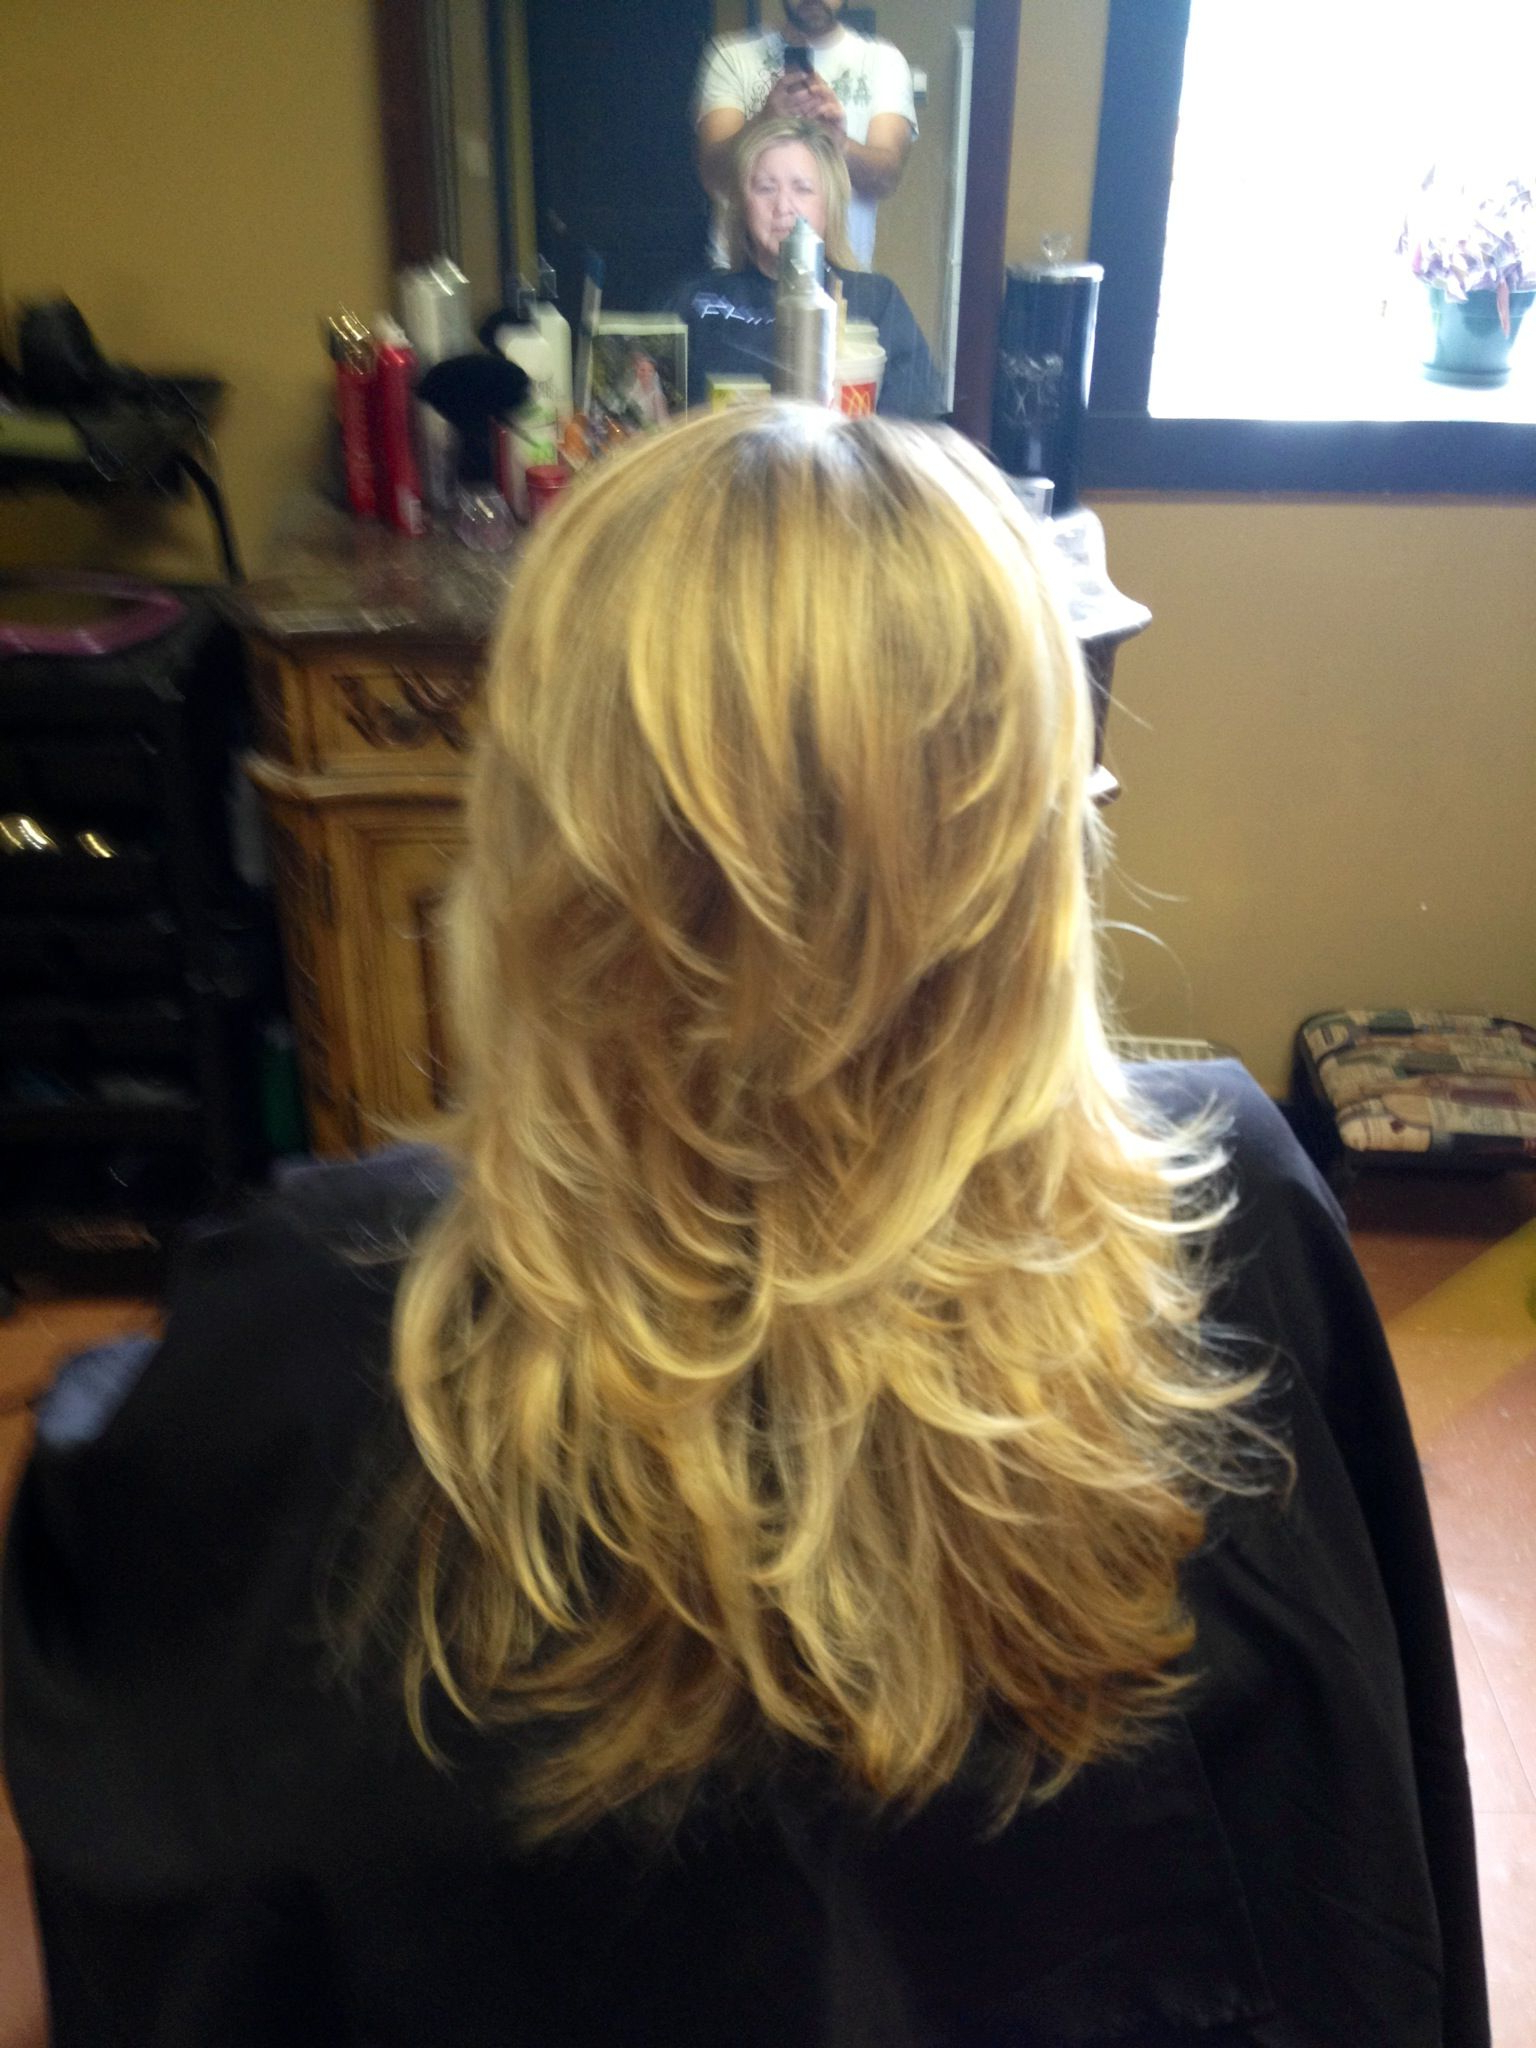 Long Hair Short Layers (Little Too Much For My Thin Hair Tho) | Hair Pertaining To Long Hair Short Layers Hairstyles (View 3 of 25)